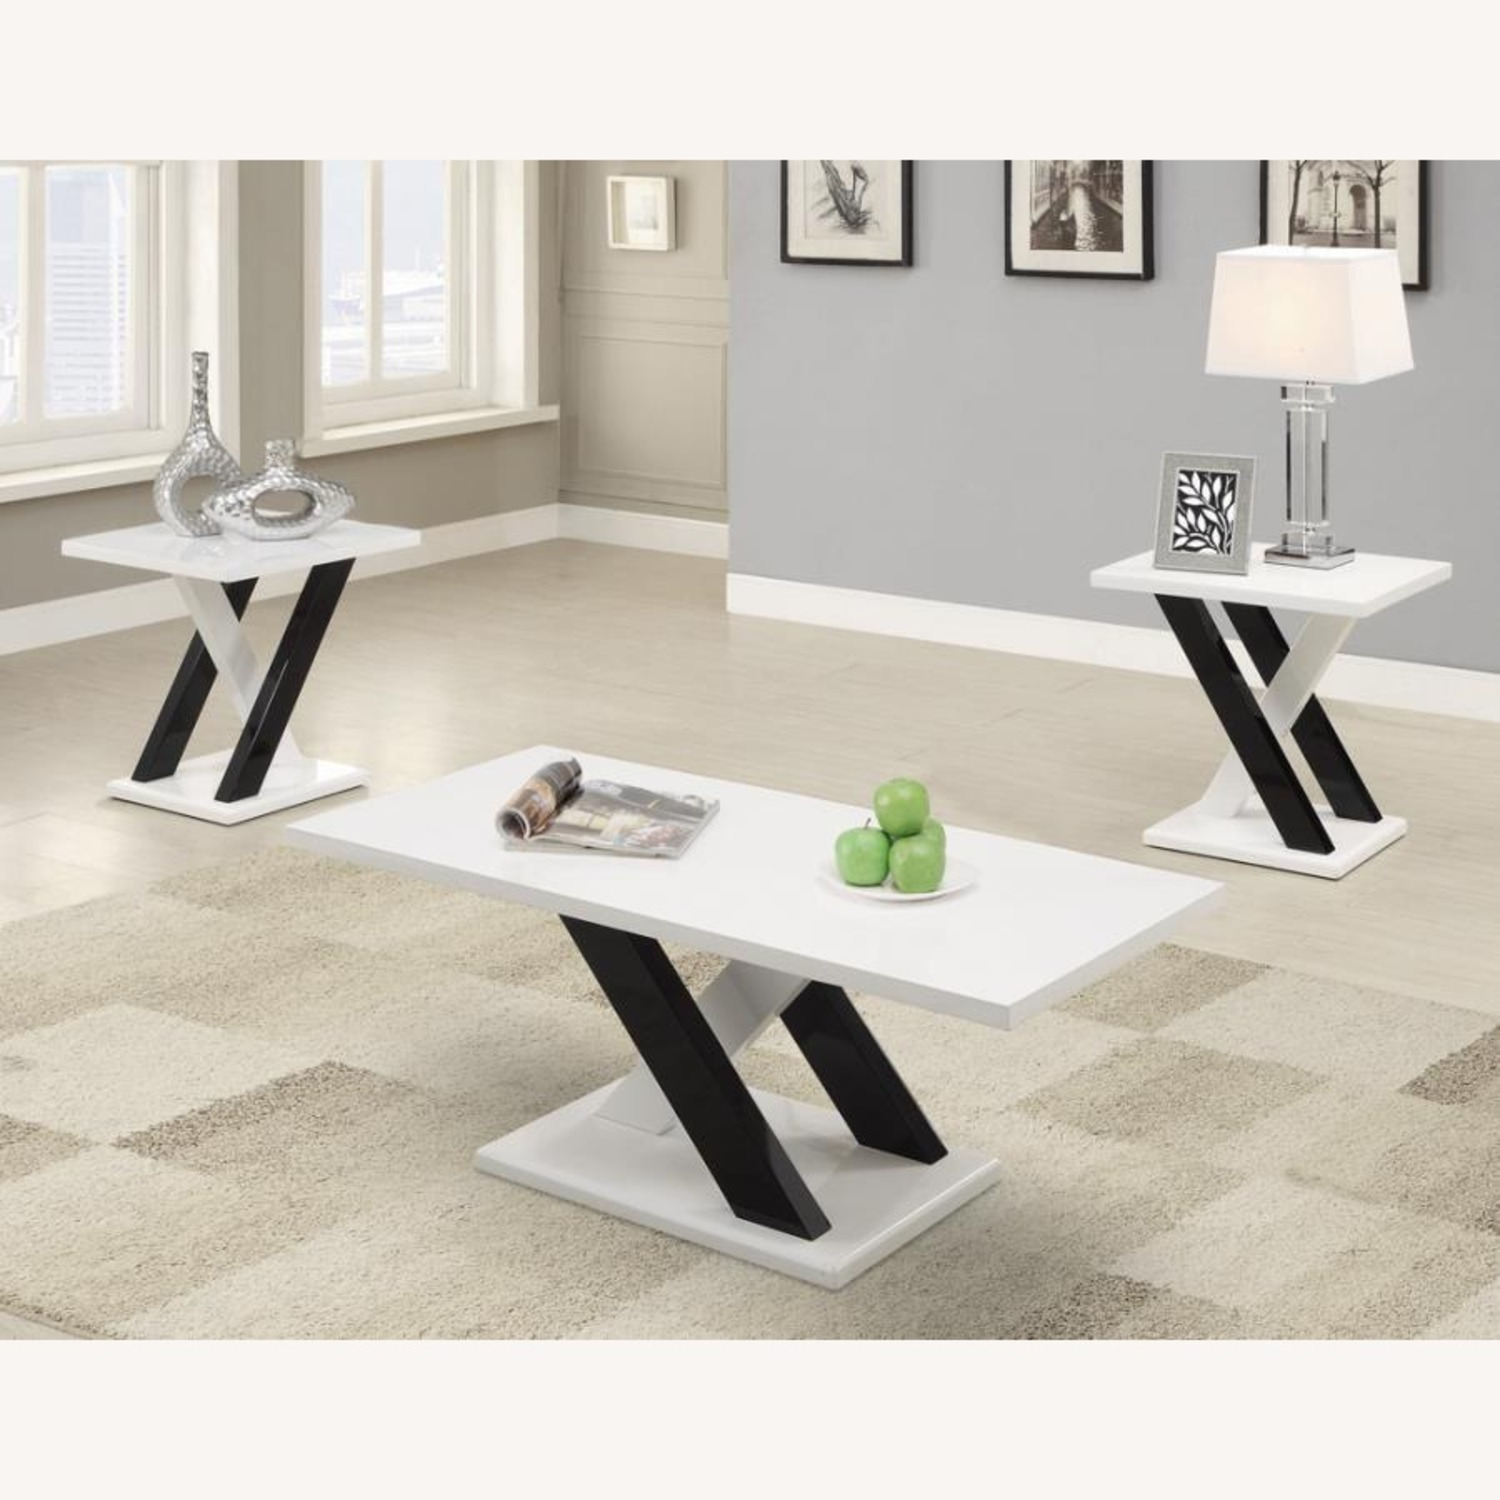 3-Piece Occasional Set In Glossy White Finish - image-0